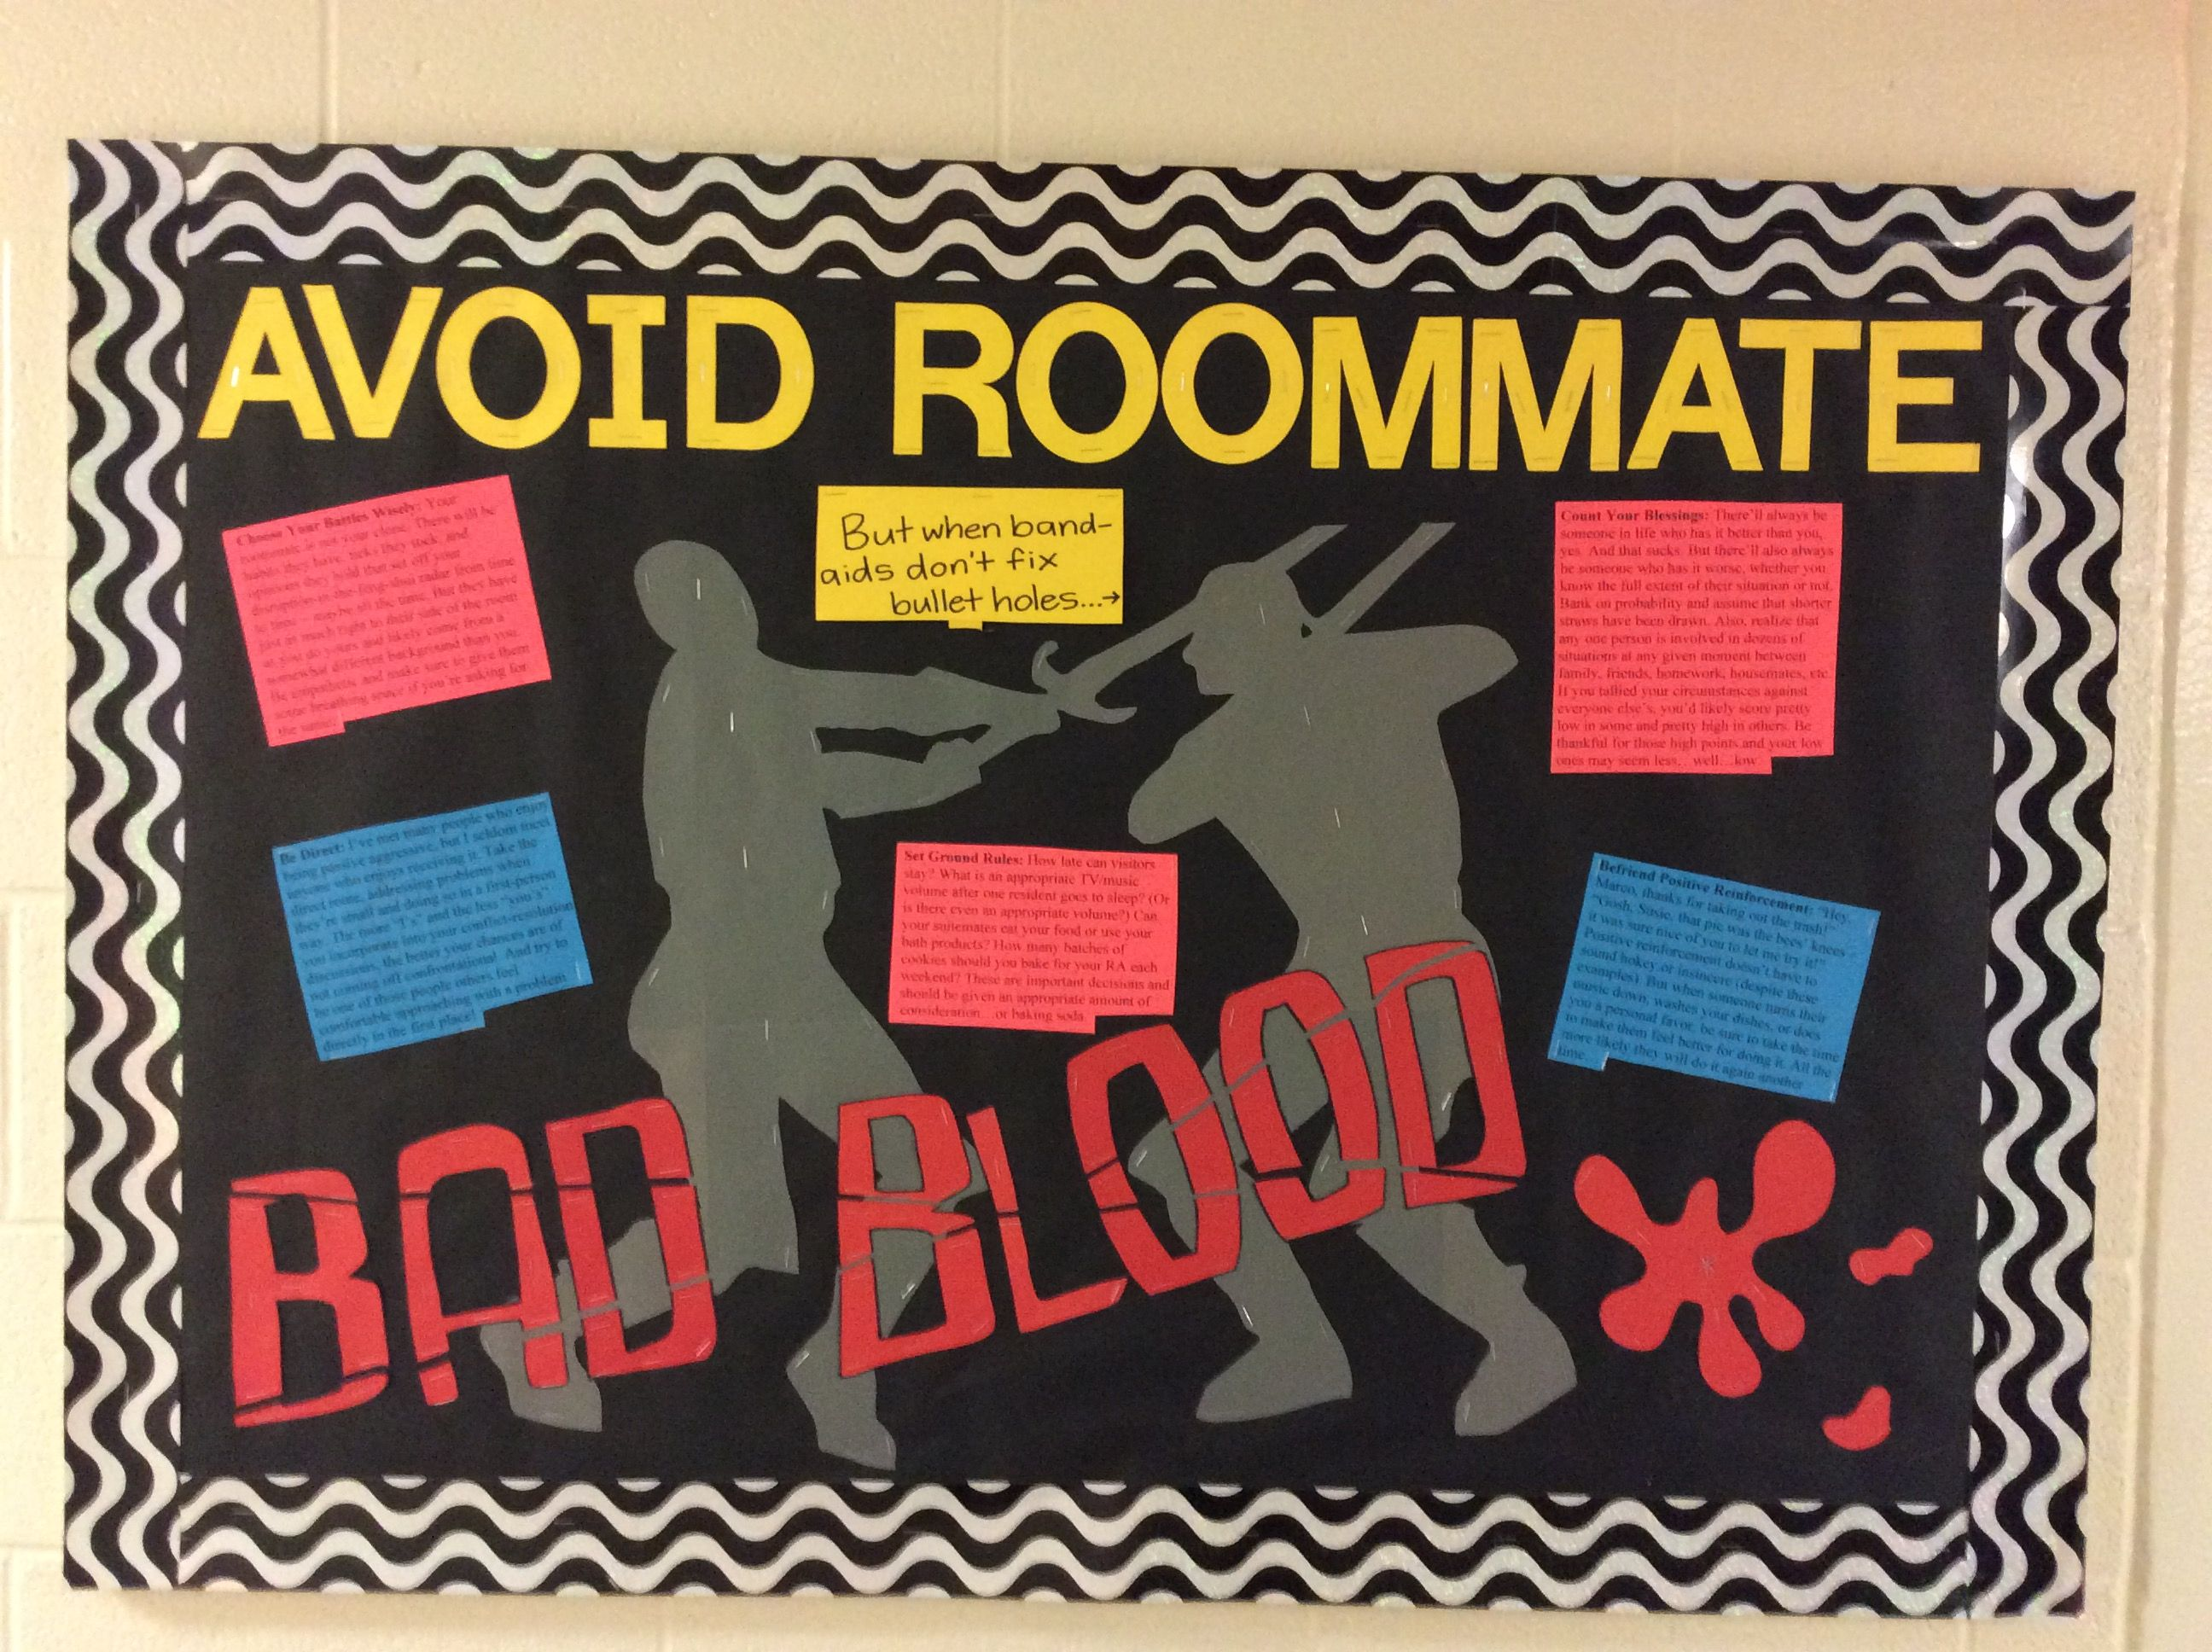 Resident Assistant College Bulletin Board Bad Blood Taylor Swift